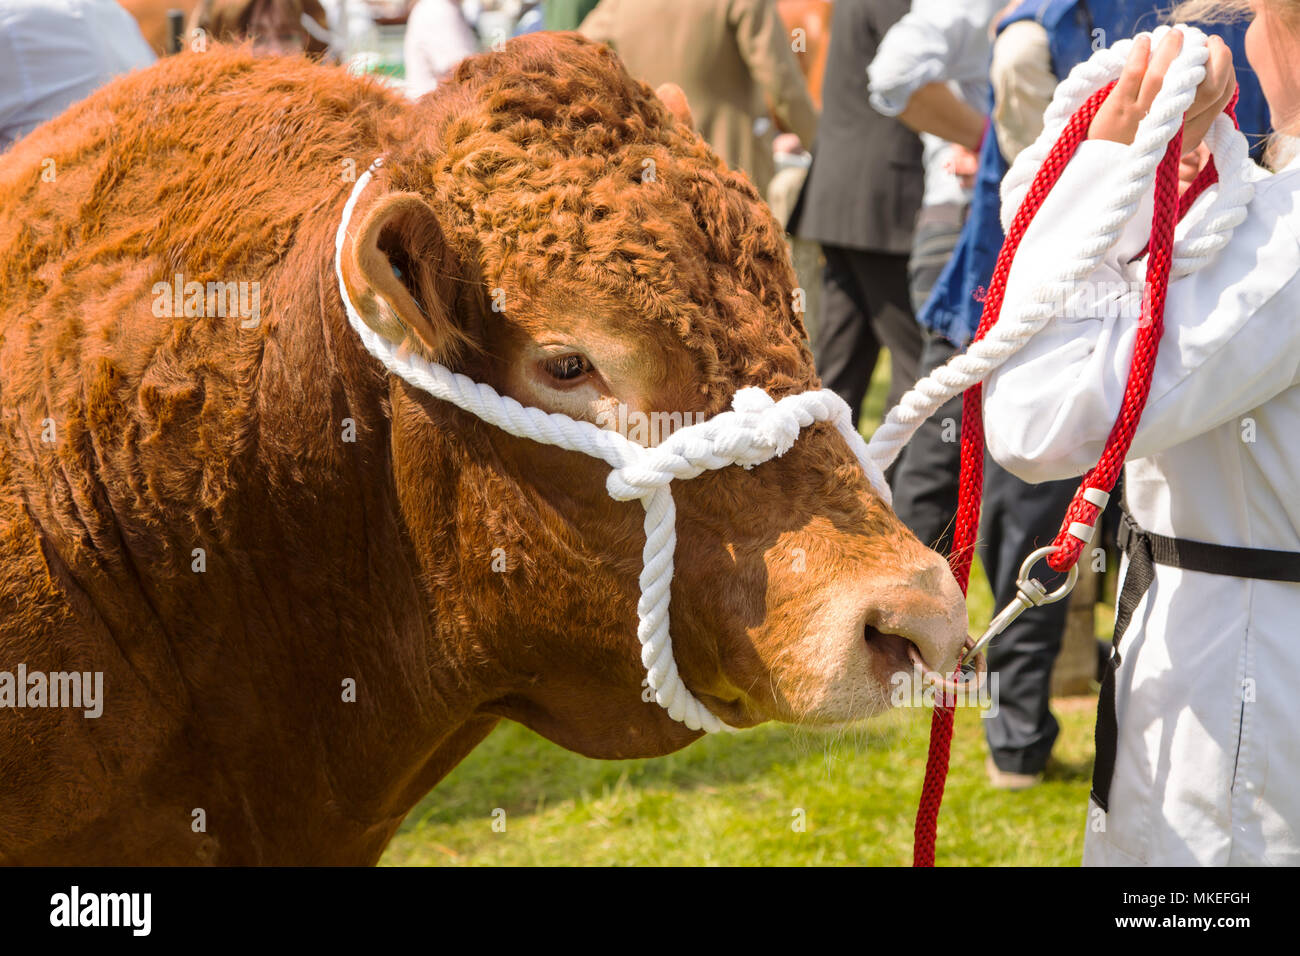 A Champion South Devon bull on display at a traditional county show - Stock Image